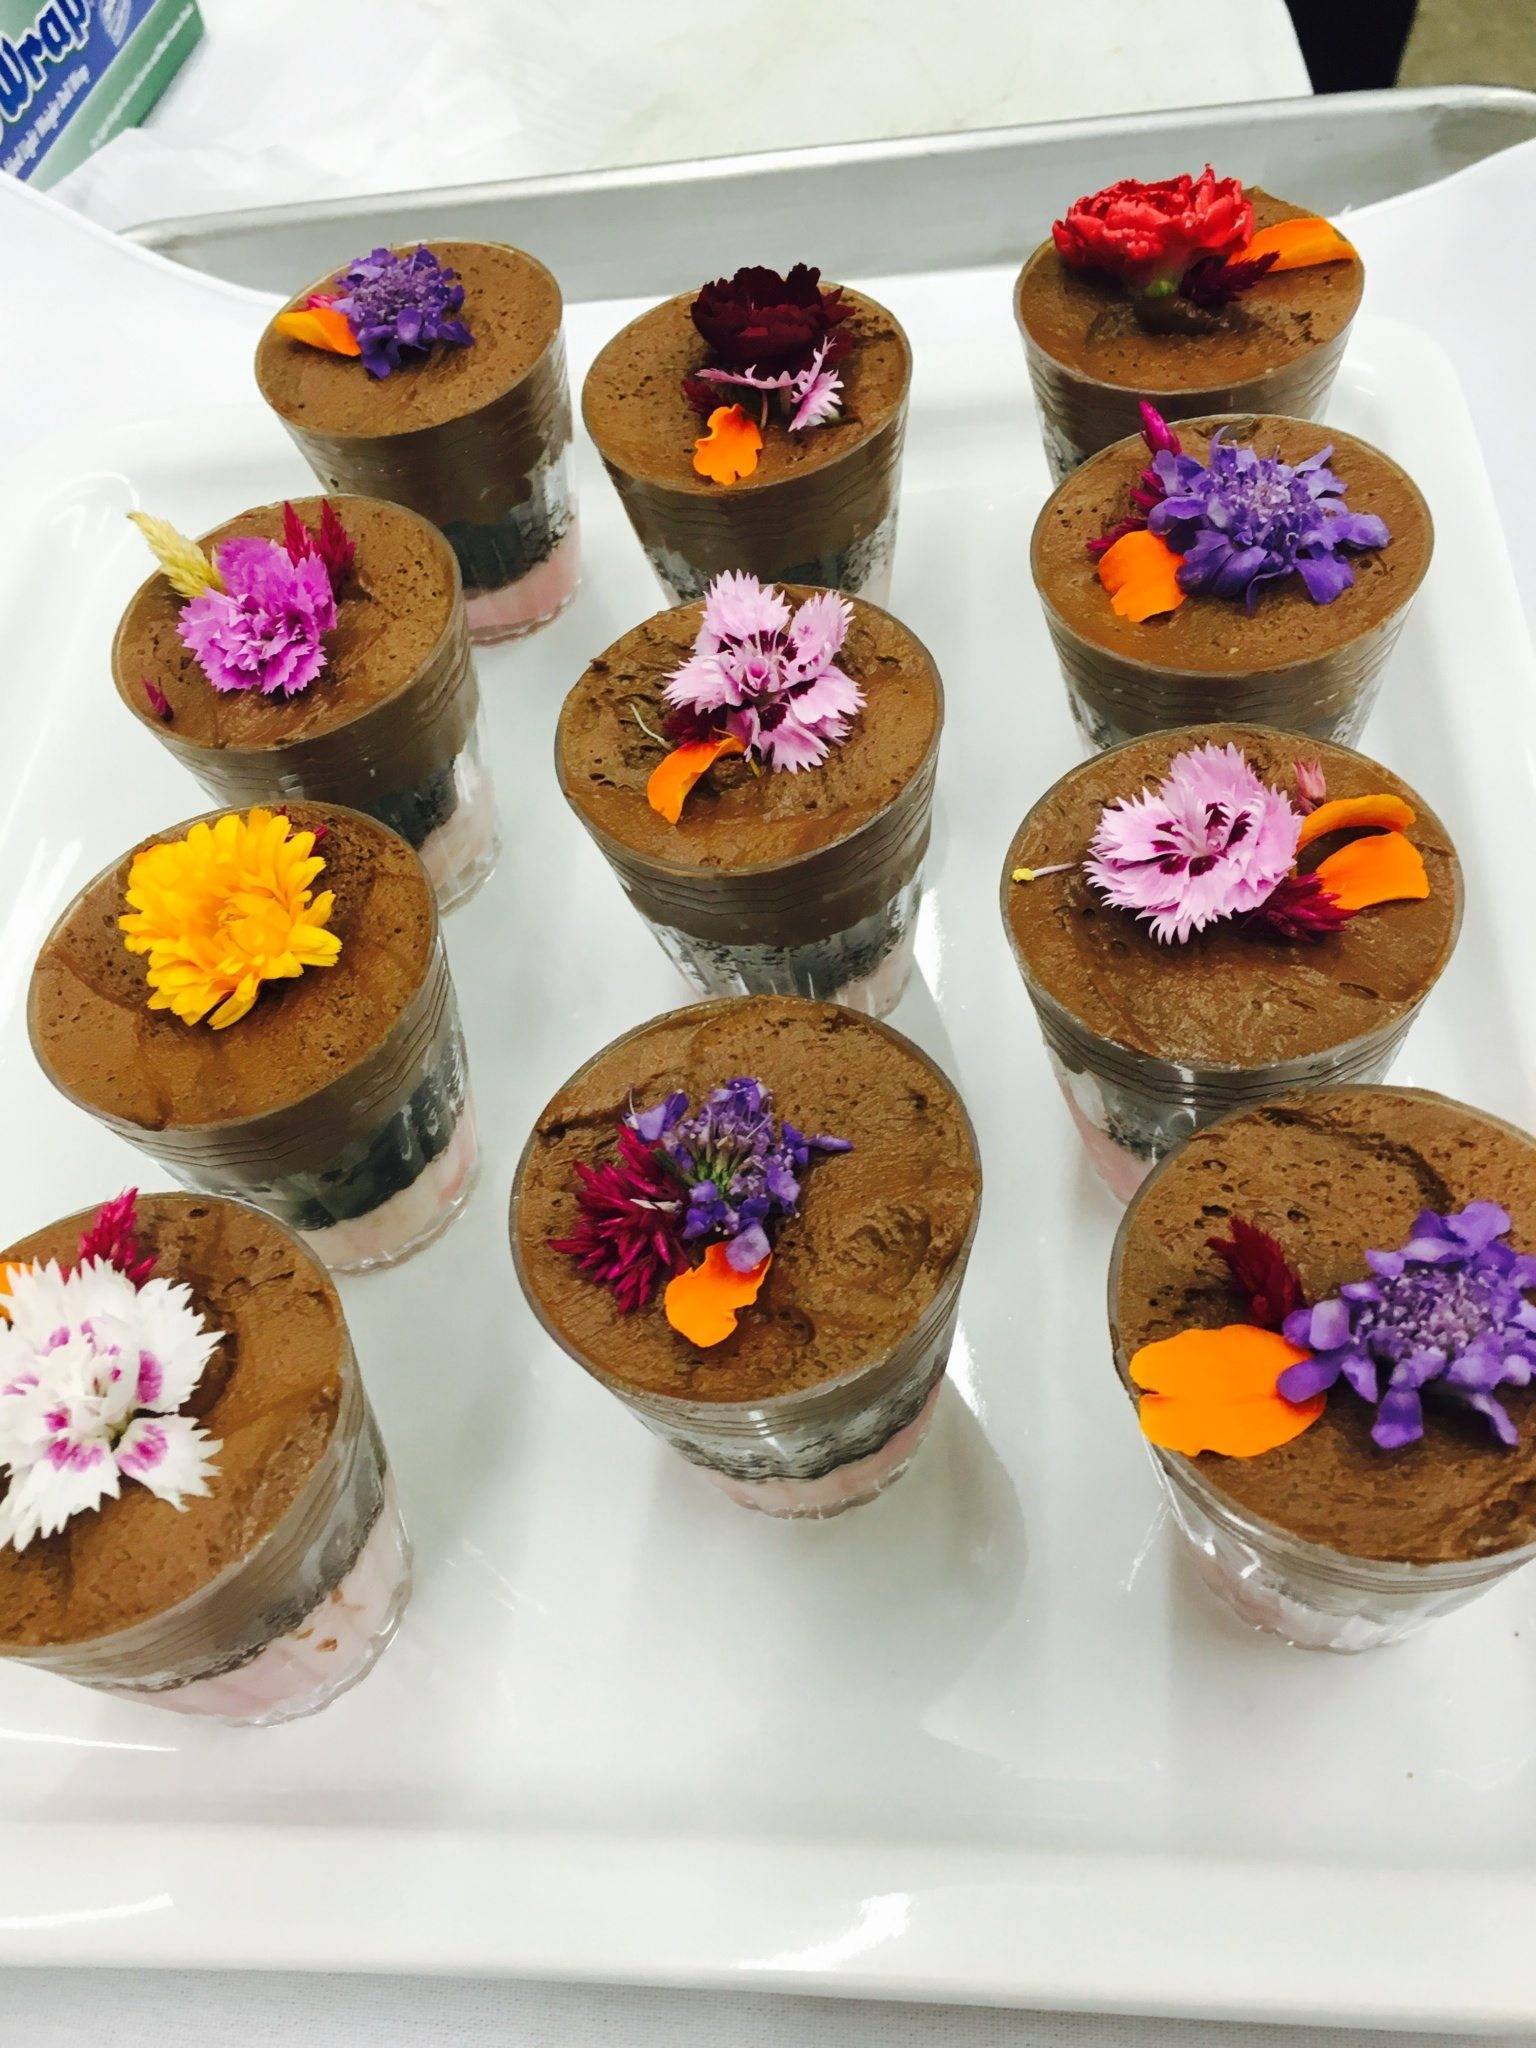 Chocolate Mousse in Shot Glasses with Flower Garnish